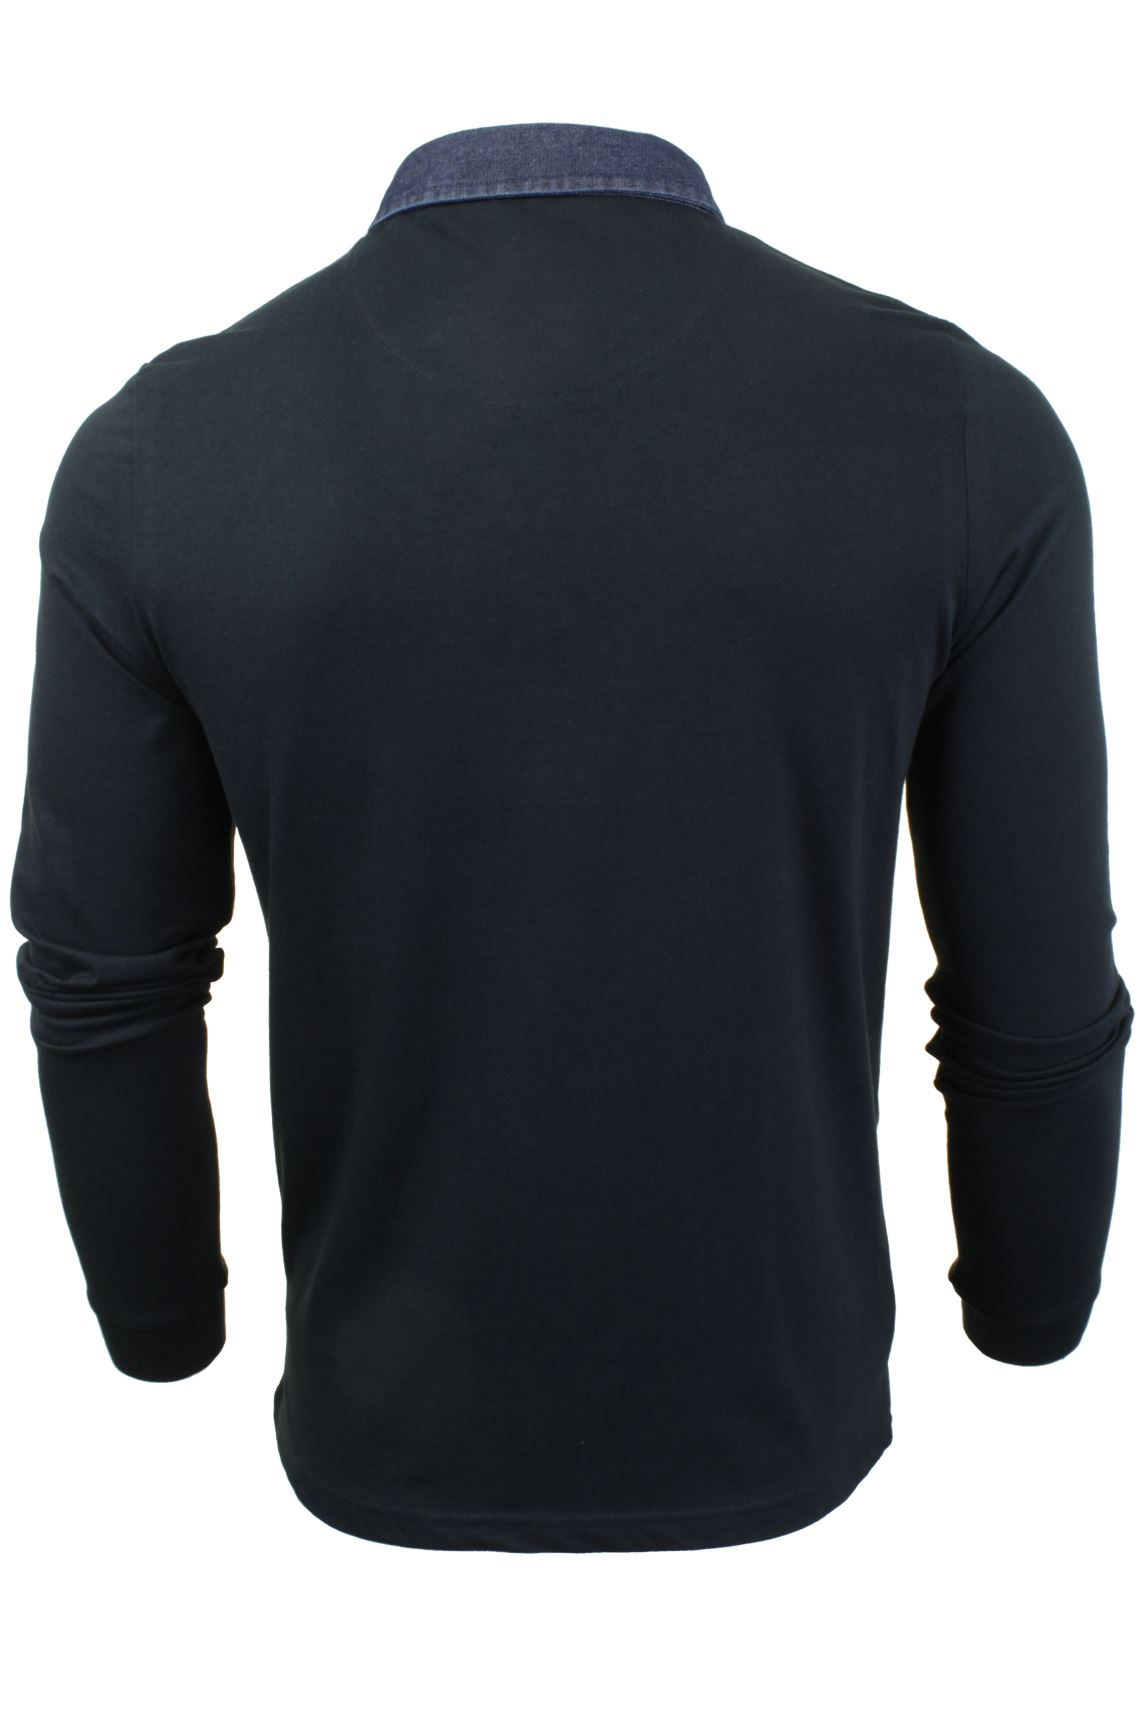 Mens-Long-Sleeved-Polo-T-Shirt-by-Brave-Soul-with-Denim-Collar thumbnail 5